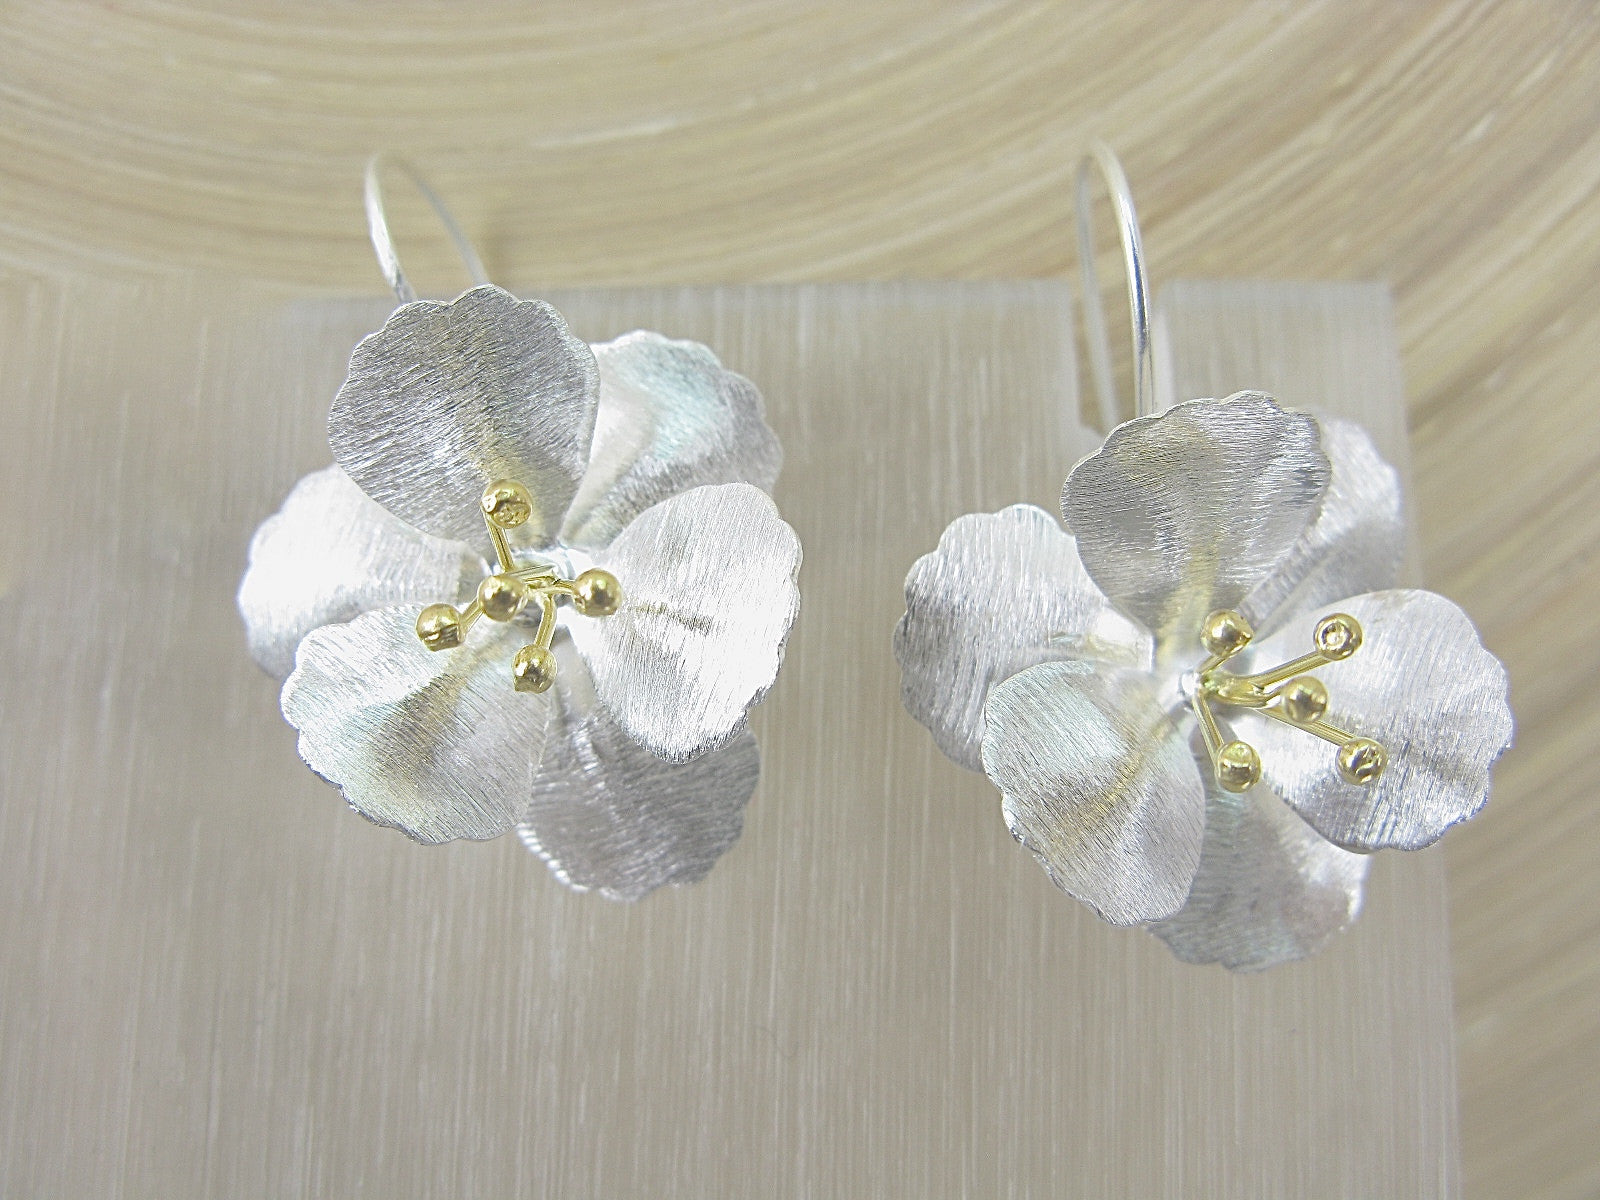 Flower Tribal Matt Look Gold Plated 925 Sterling Silver Earrings Earrings Faith Owl - Faith Owl